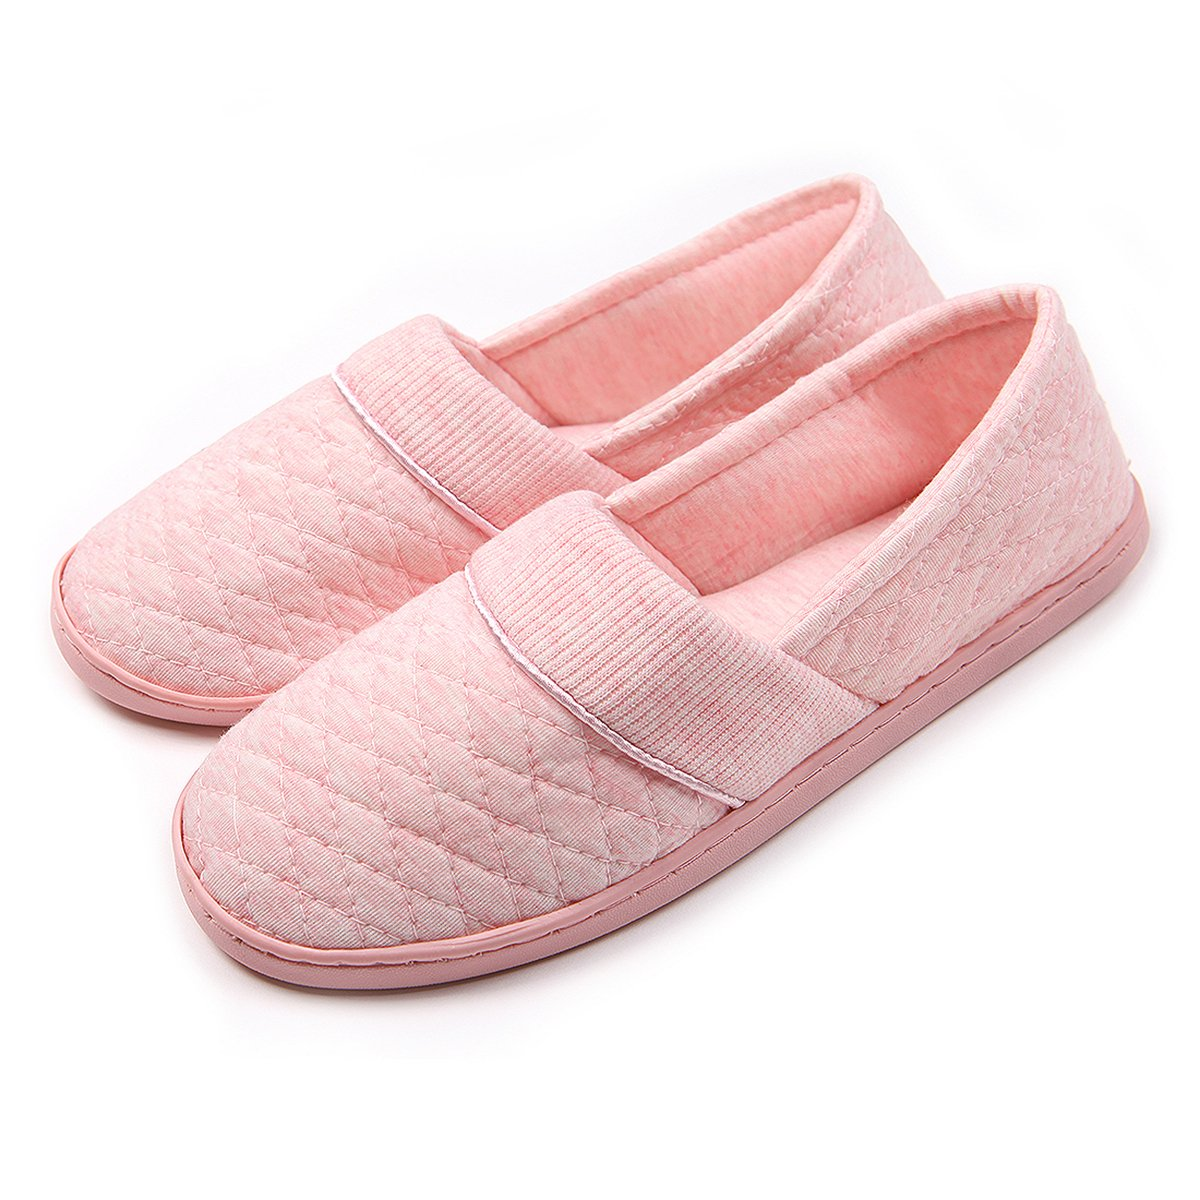 ChicNChic Women Comfort Cotton Soft Sole Indoor Slippers Anti-Slip House Shoes Pink 8 B(M) US